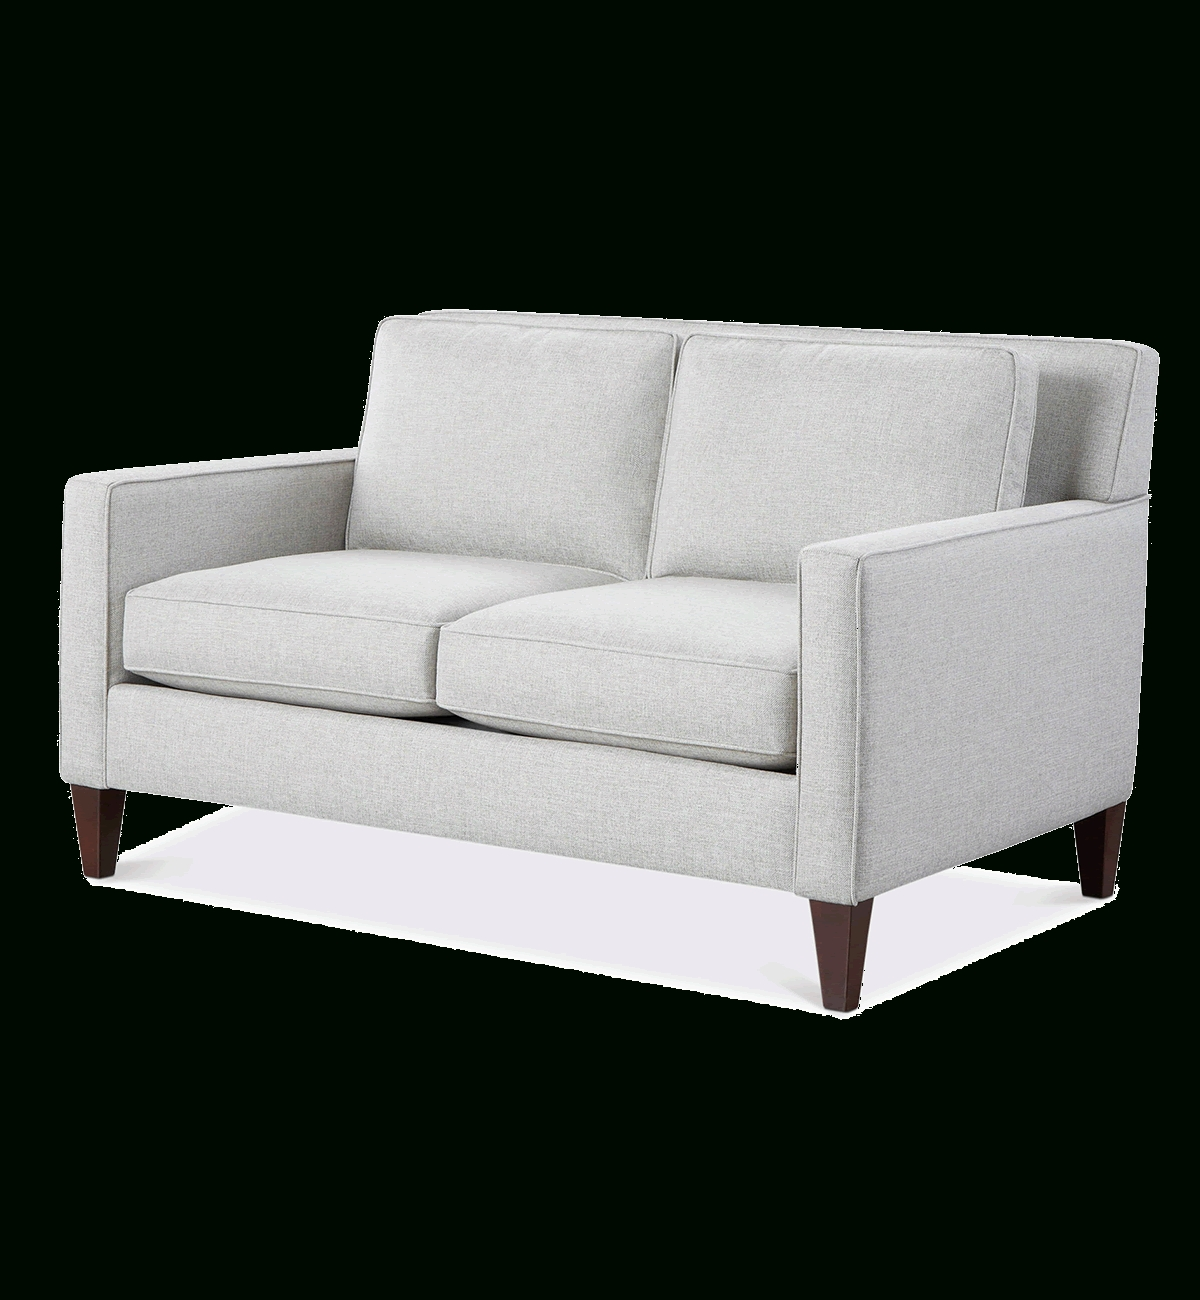 Macys Leather Sofas For Well Known Leather Couches And Sofas – Macy's (View 3 of 15)